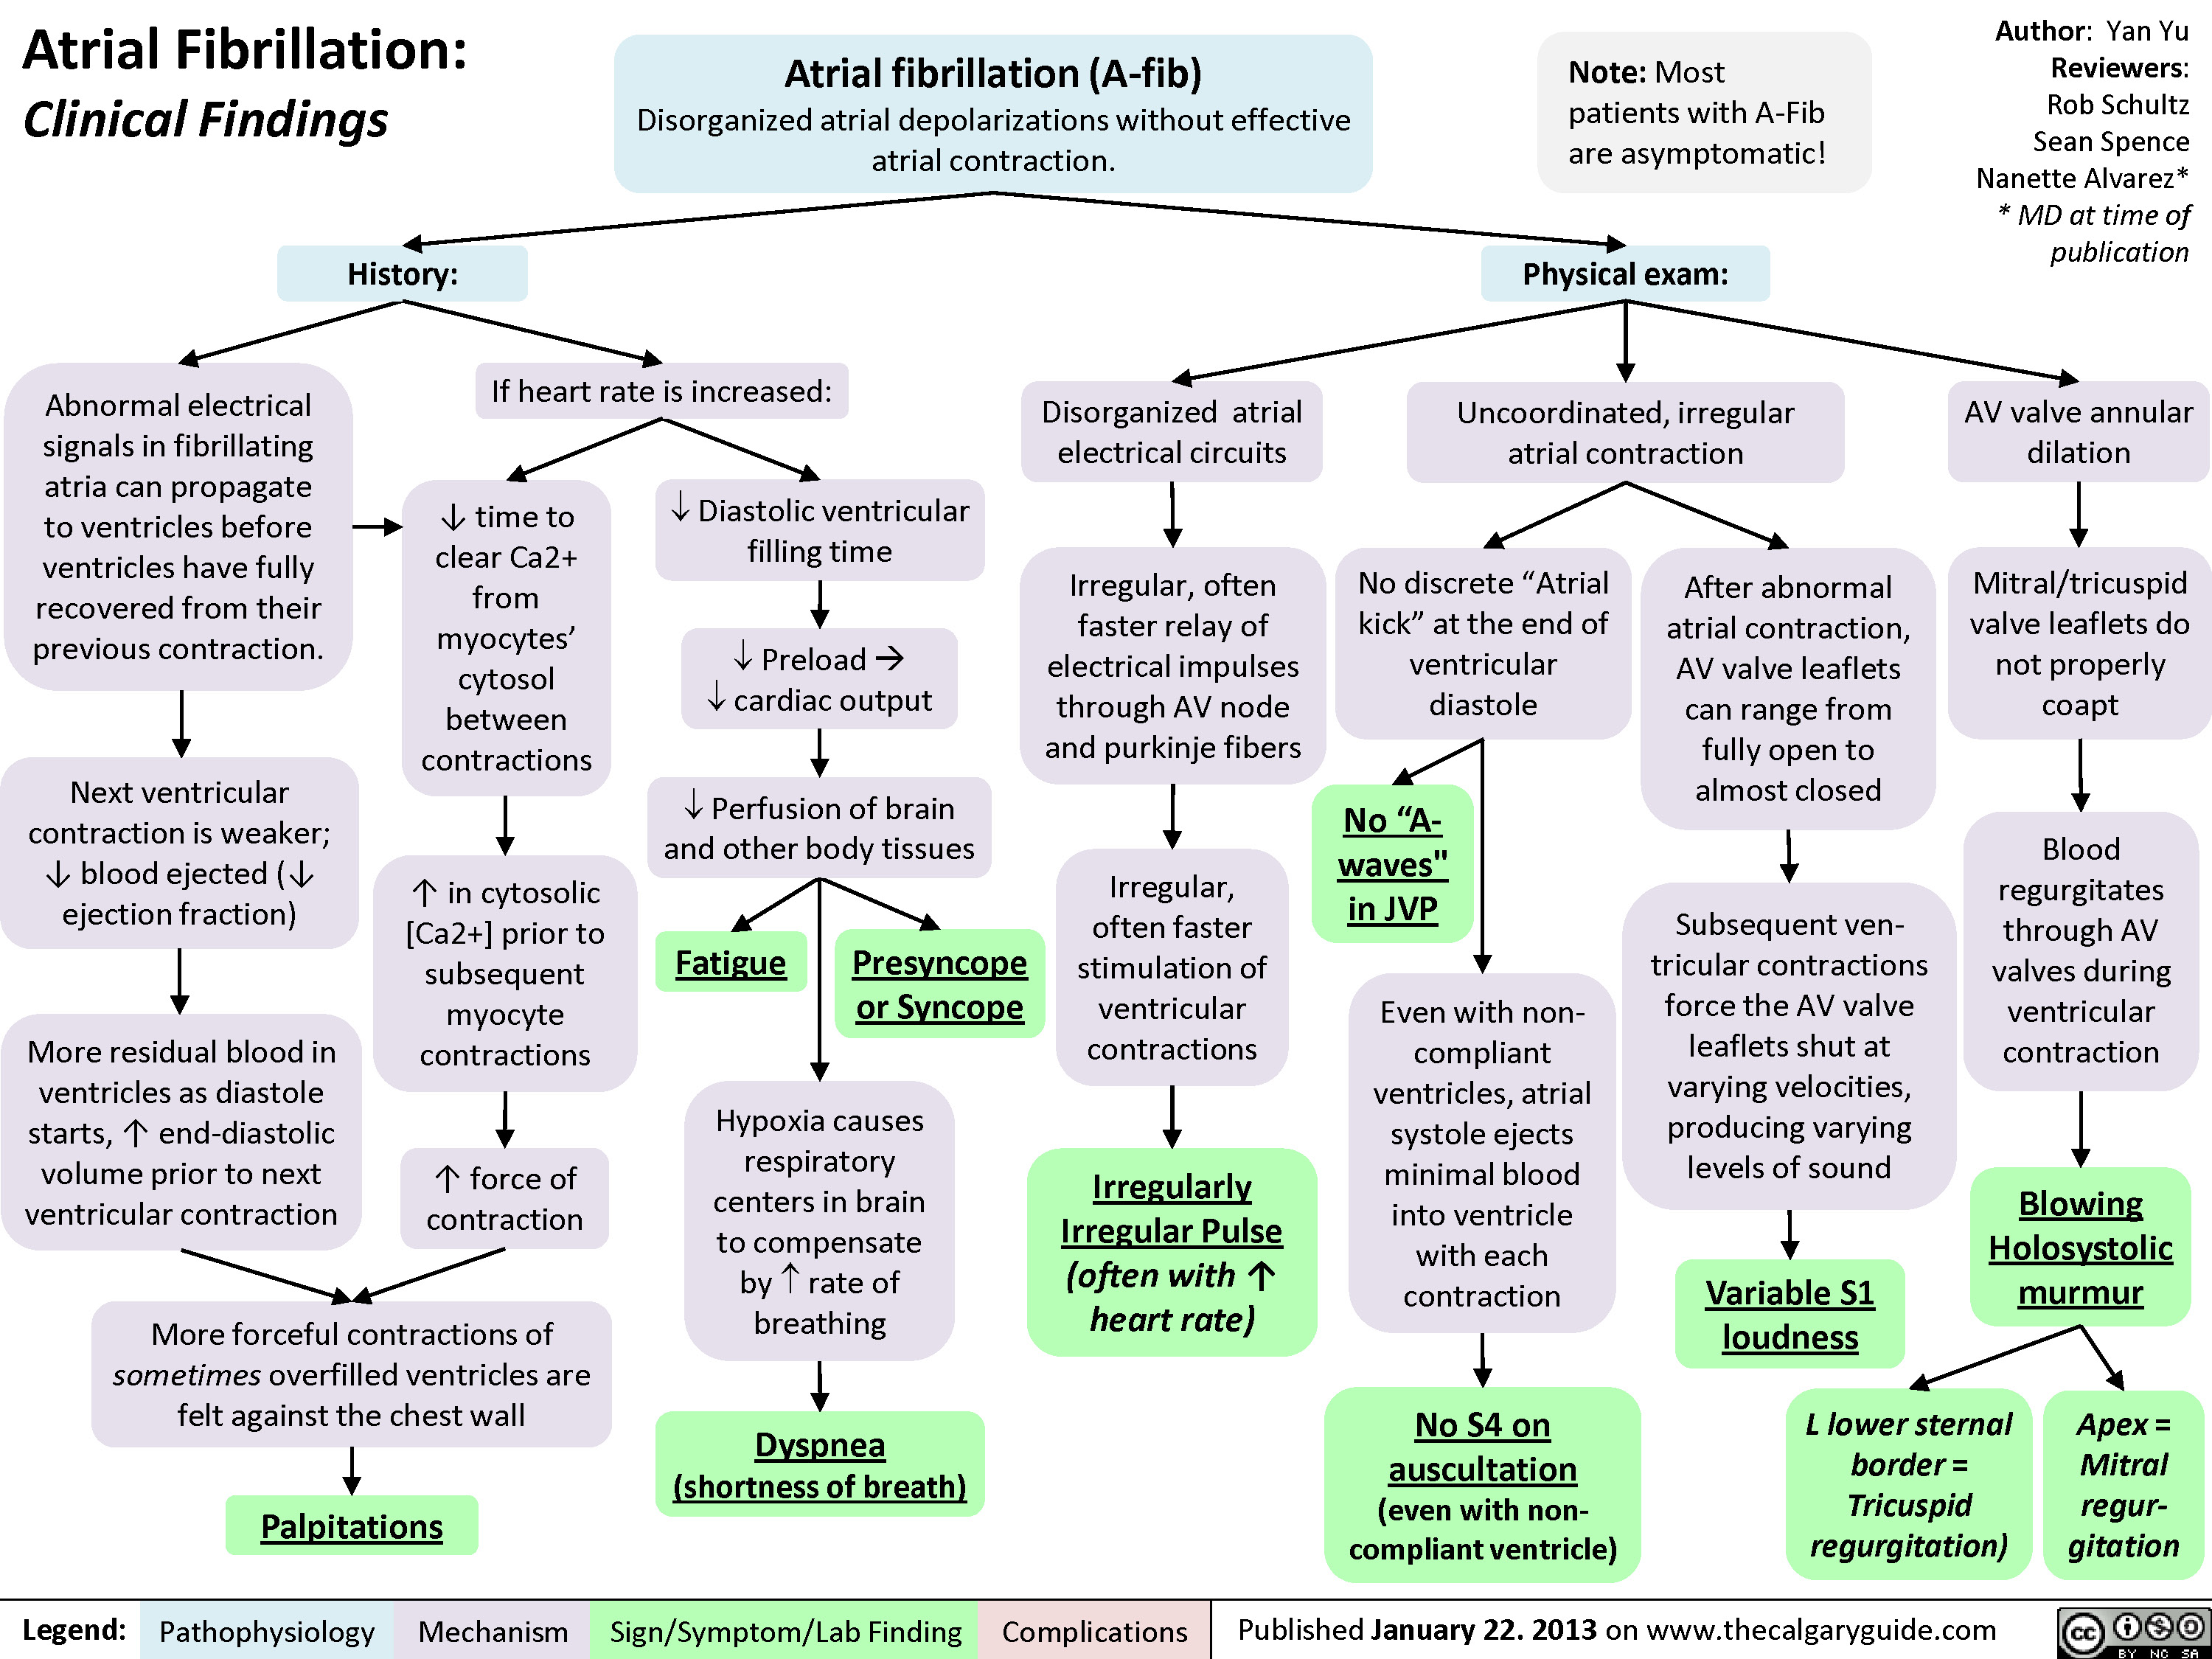 Atrial Fibrillation - Clinical Findings